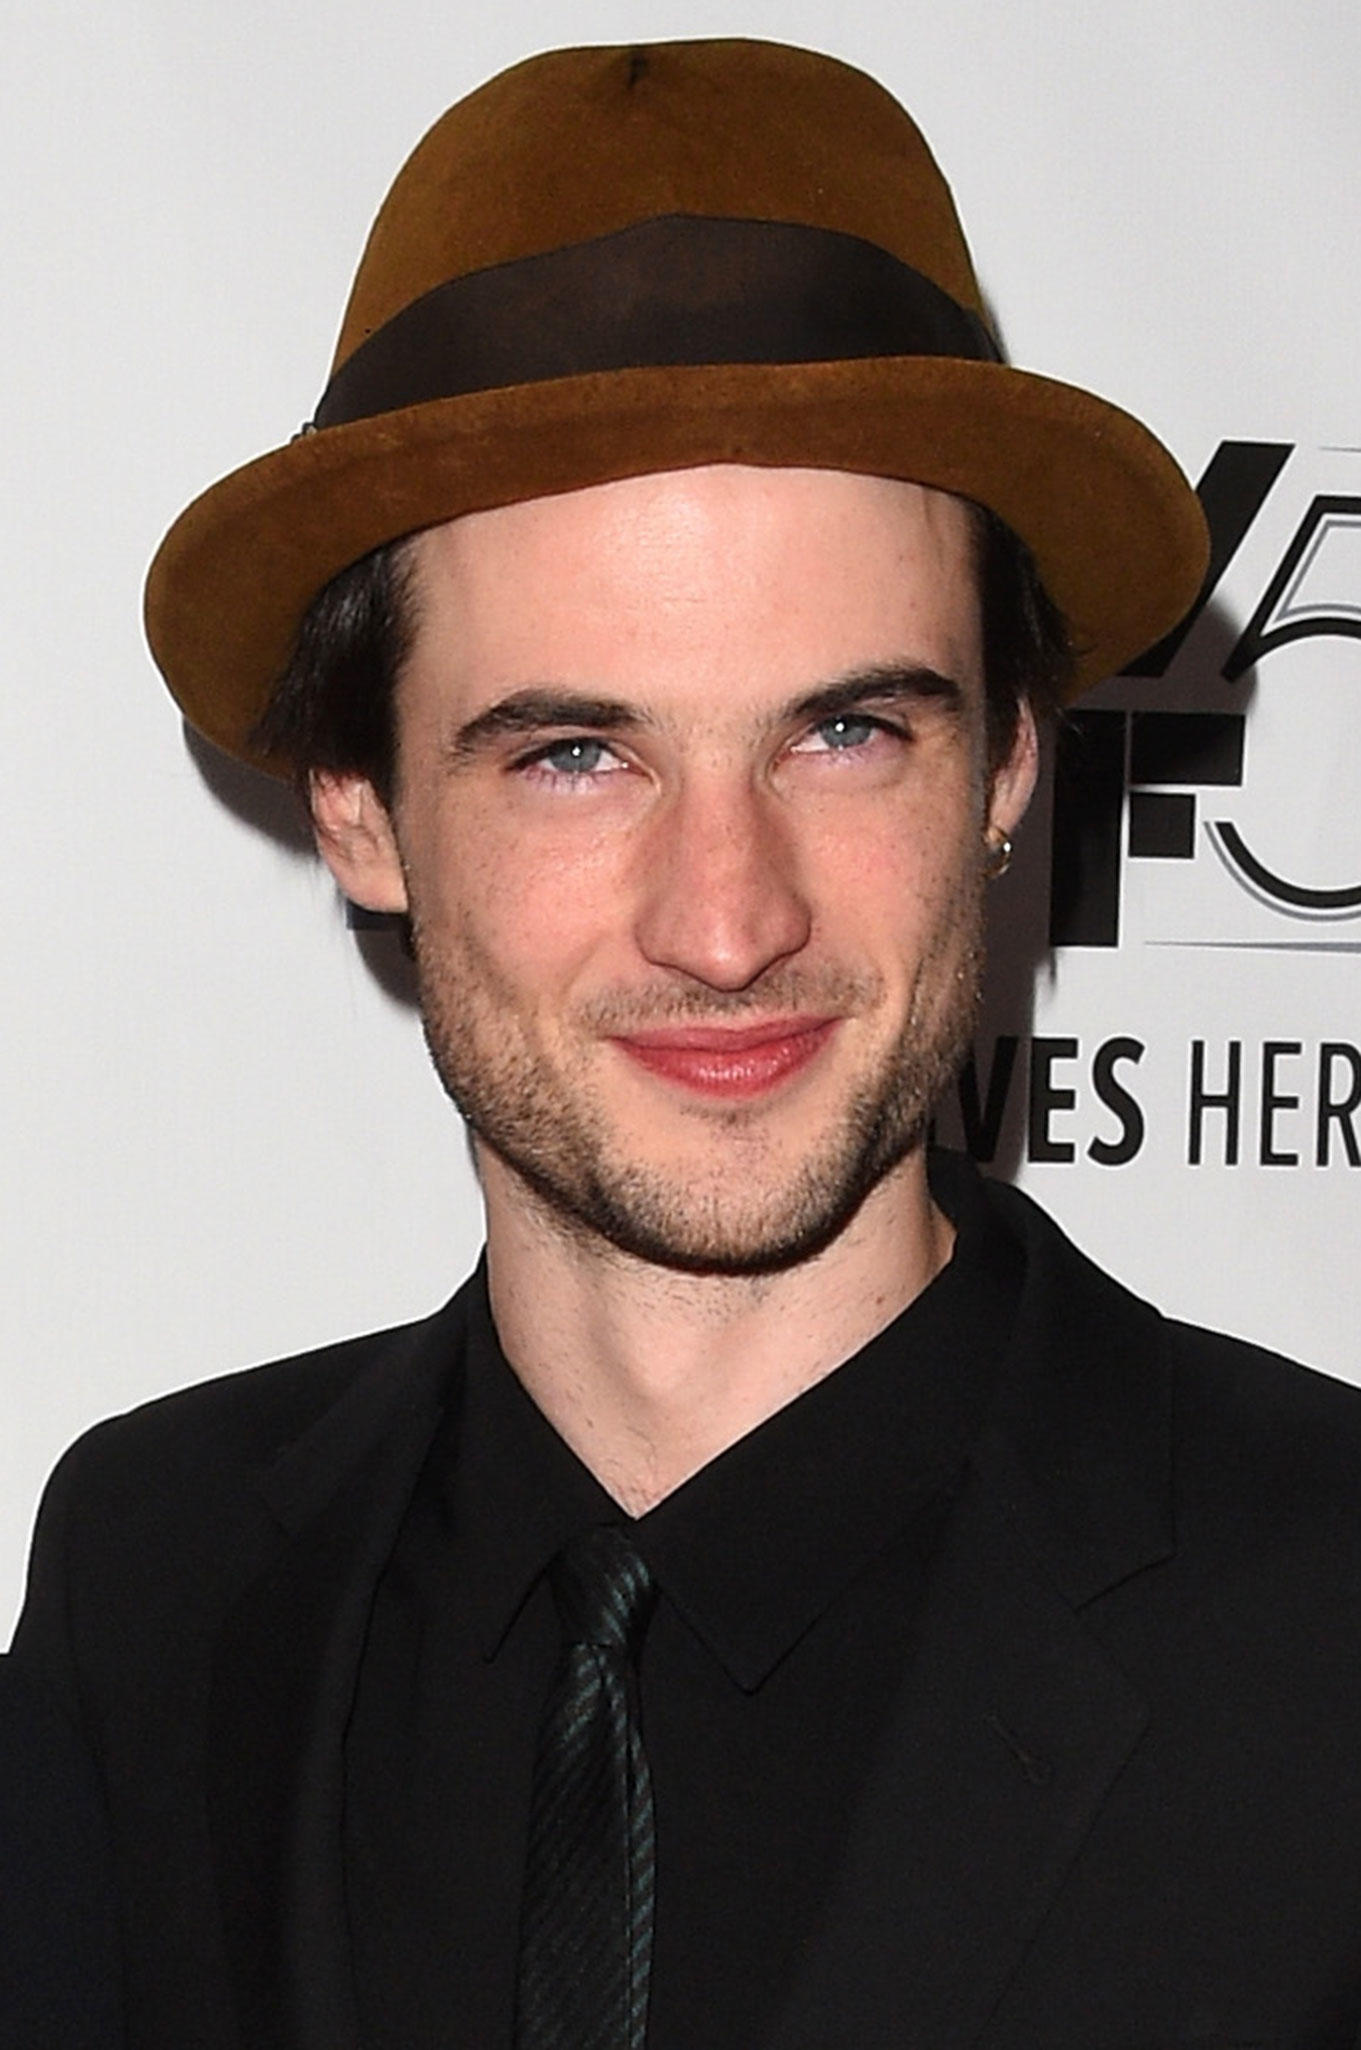 Tom Sturridge at the NY premiere for